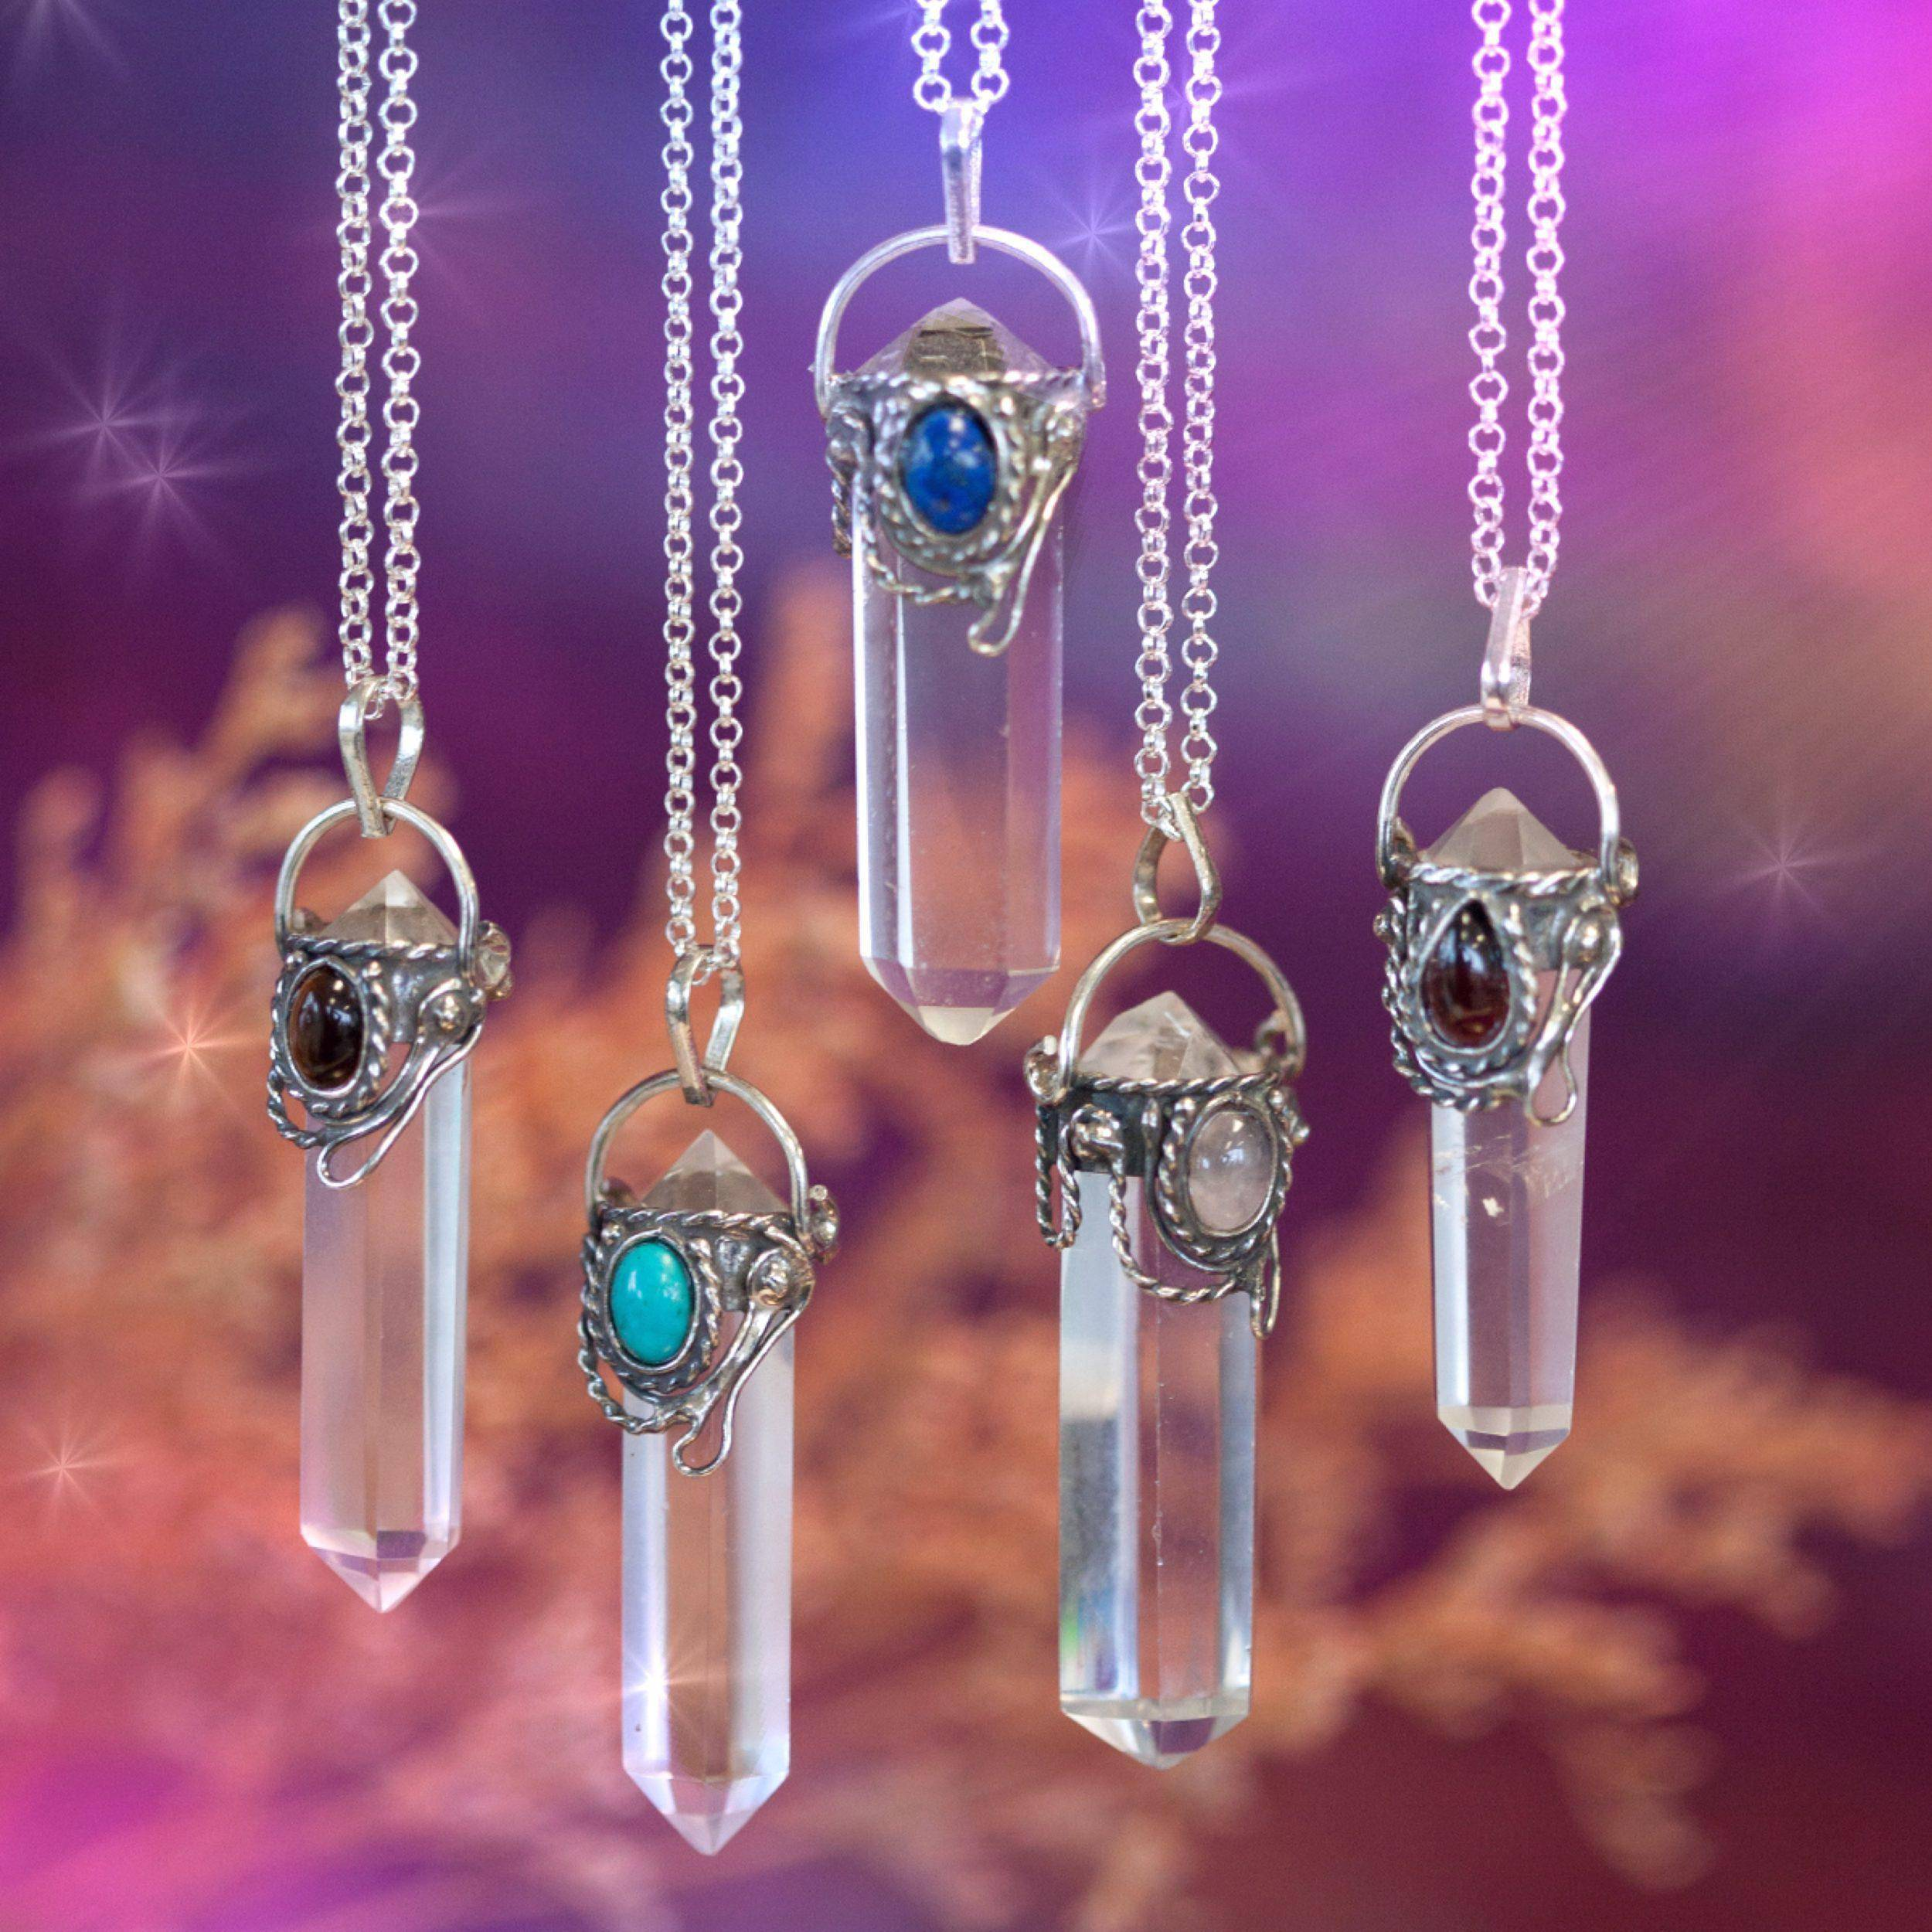 Merlin_Perfume_with_Free_Wizard_Pendant_2of3_10_5